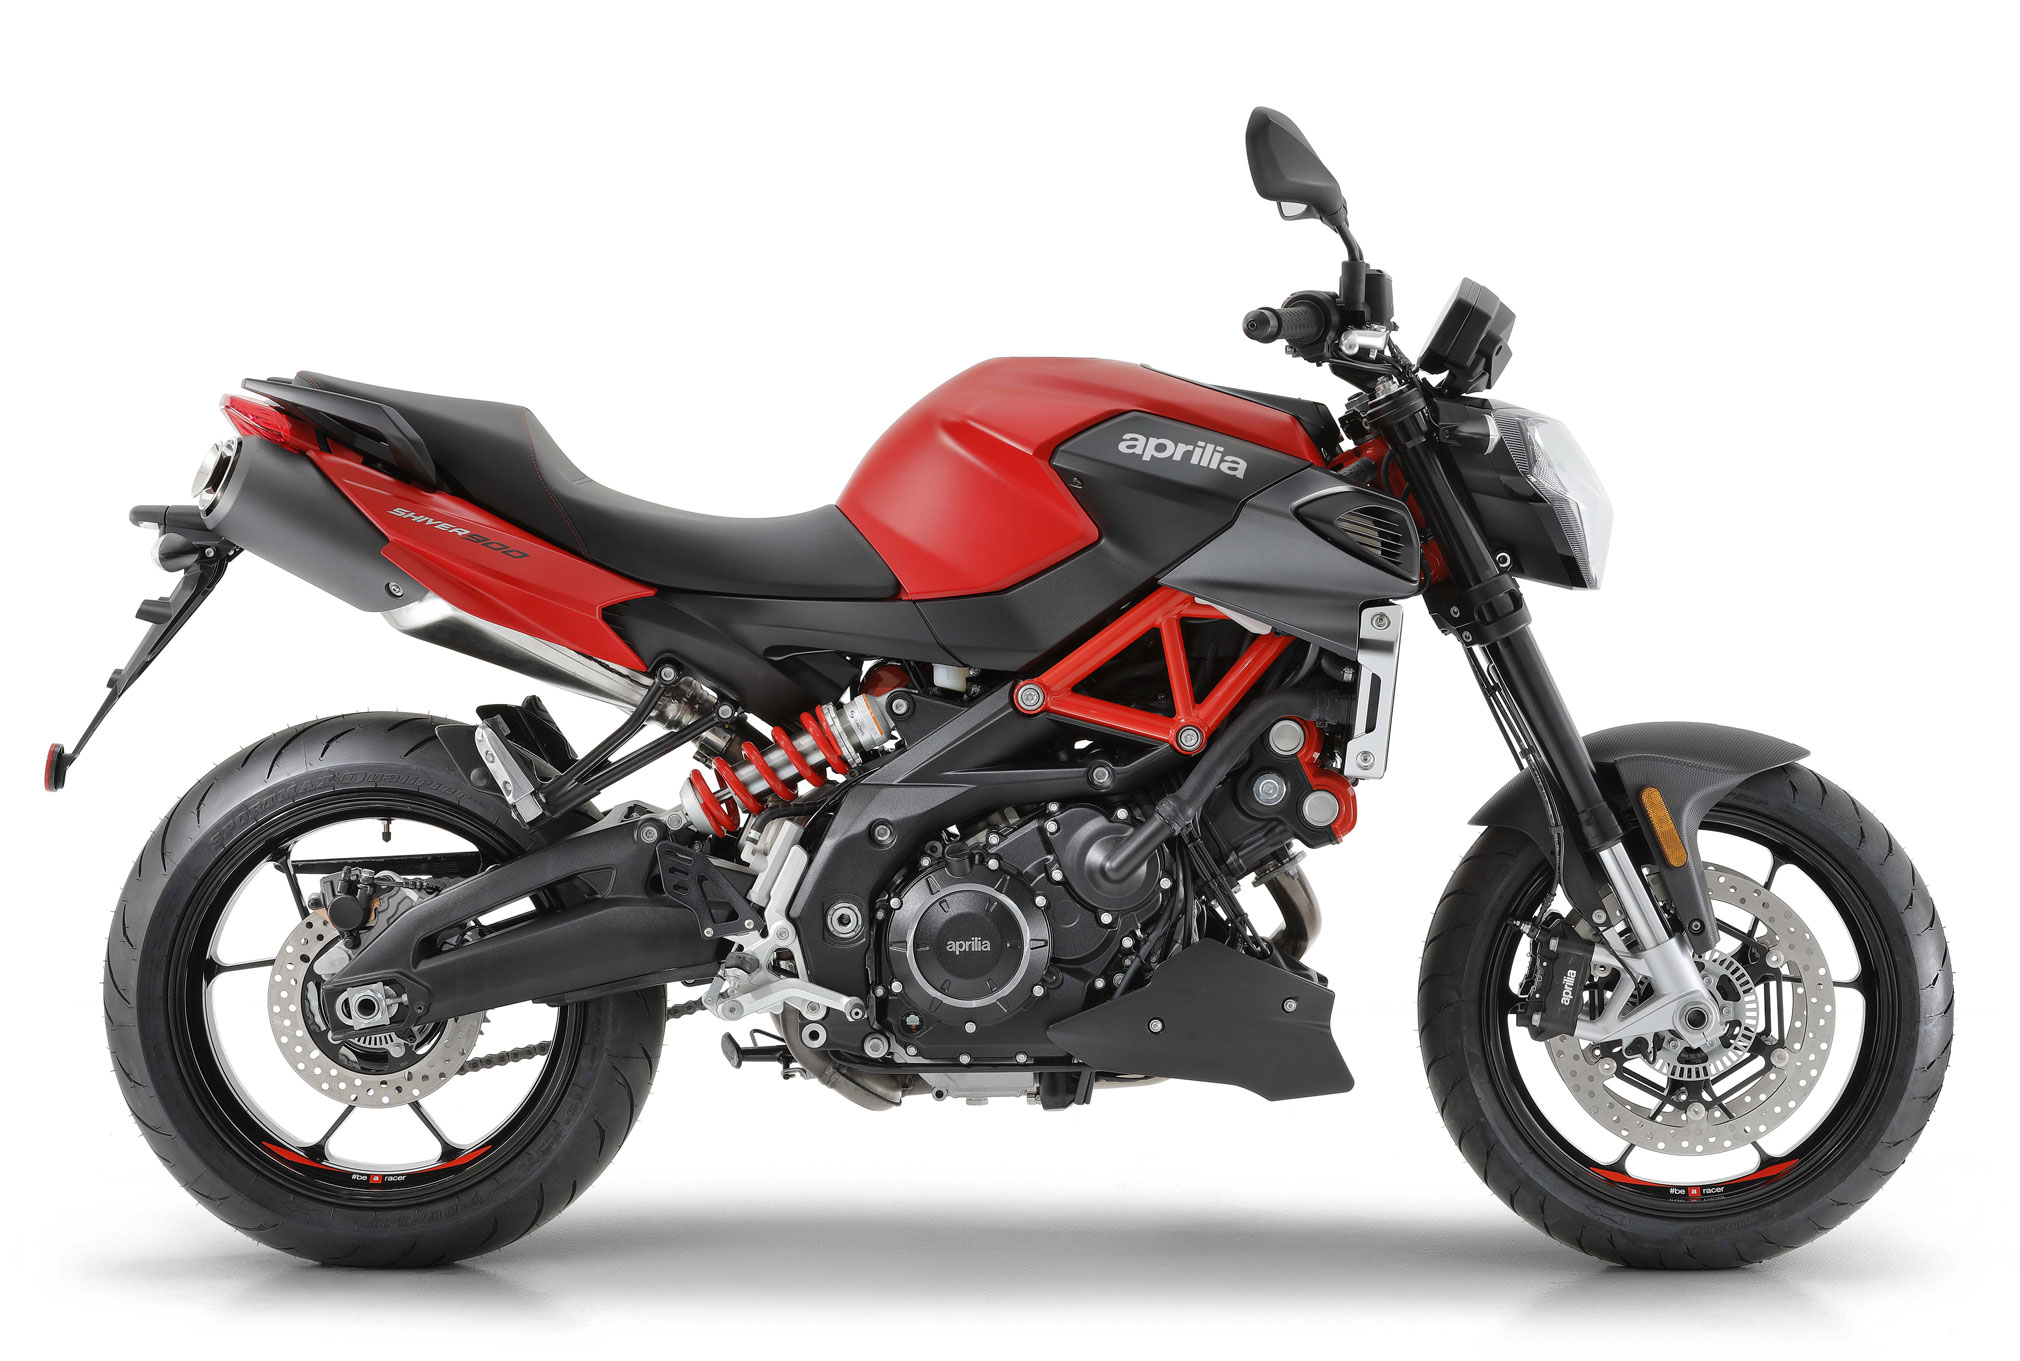 2020 Aprilia Shiver 900 Guide • Total Motorcycle